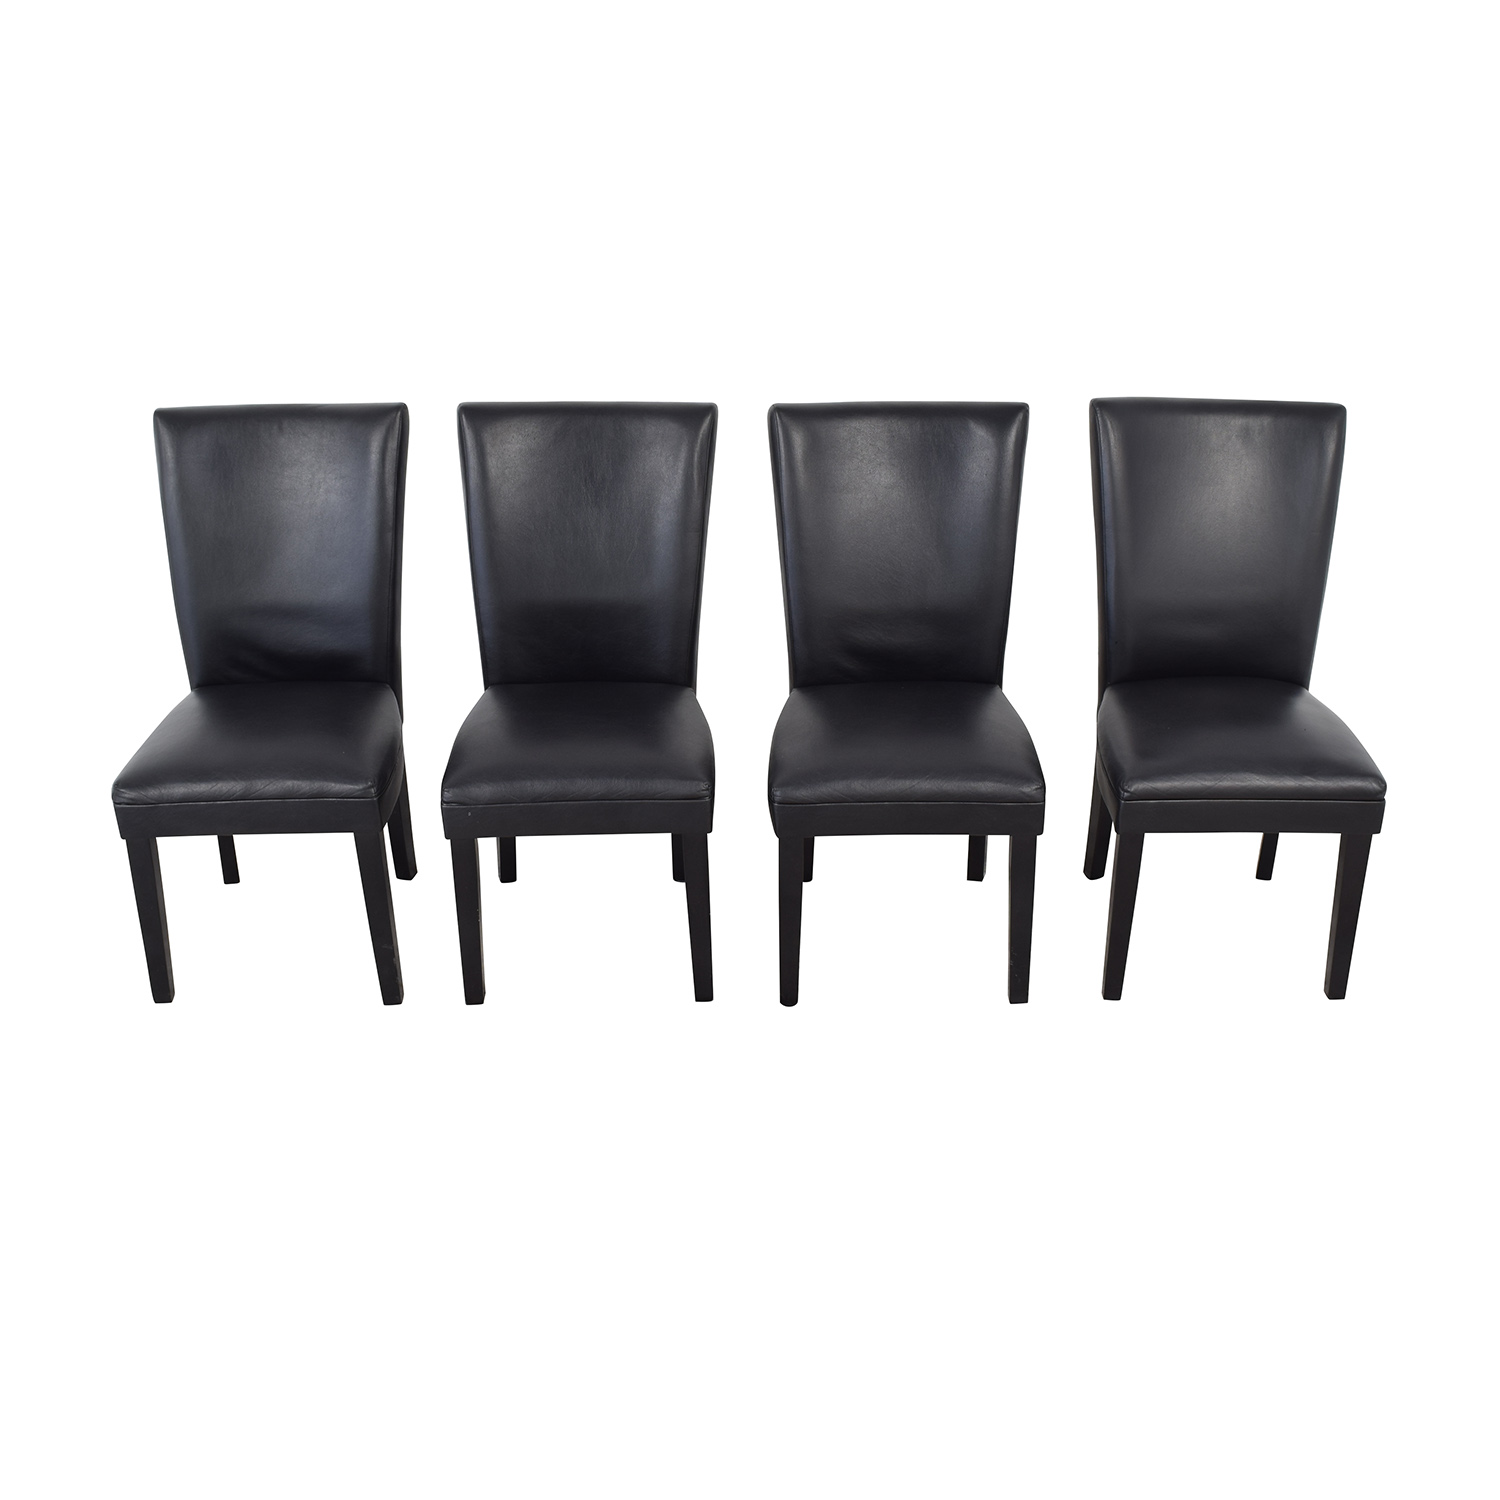 Steve Silver Co Dining Chairs / Chairs